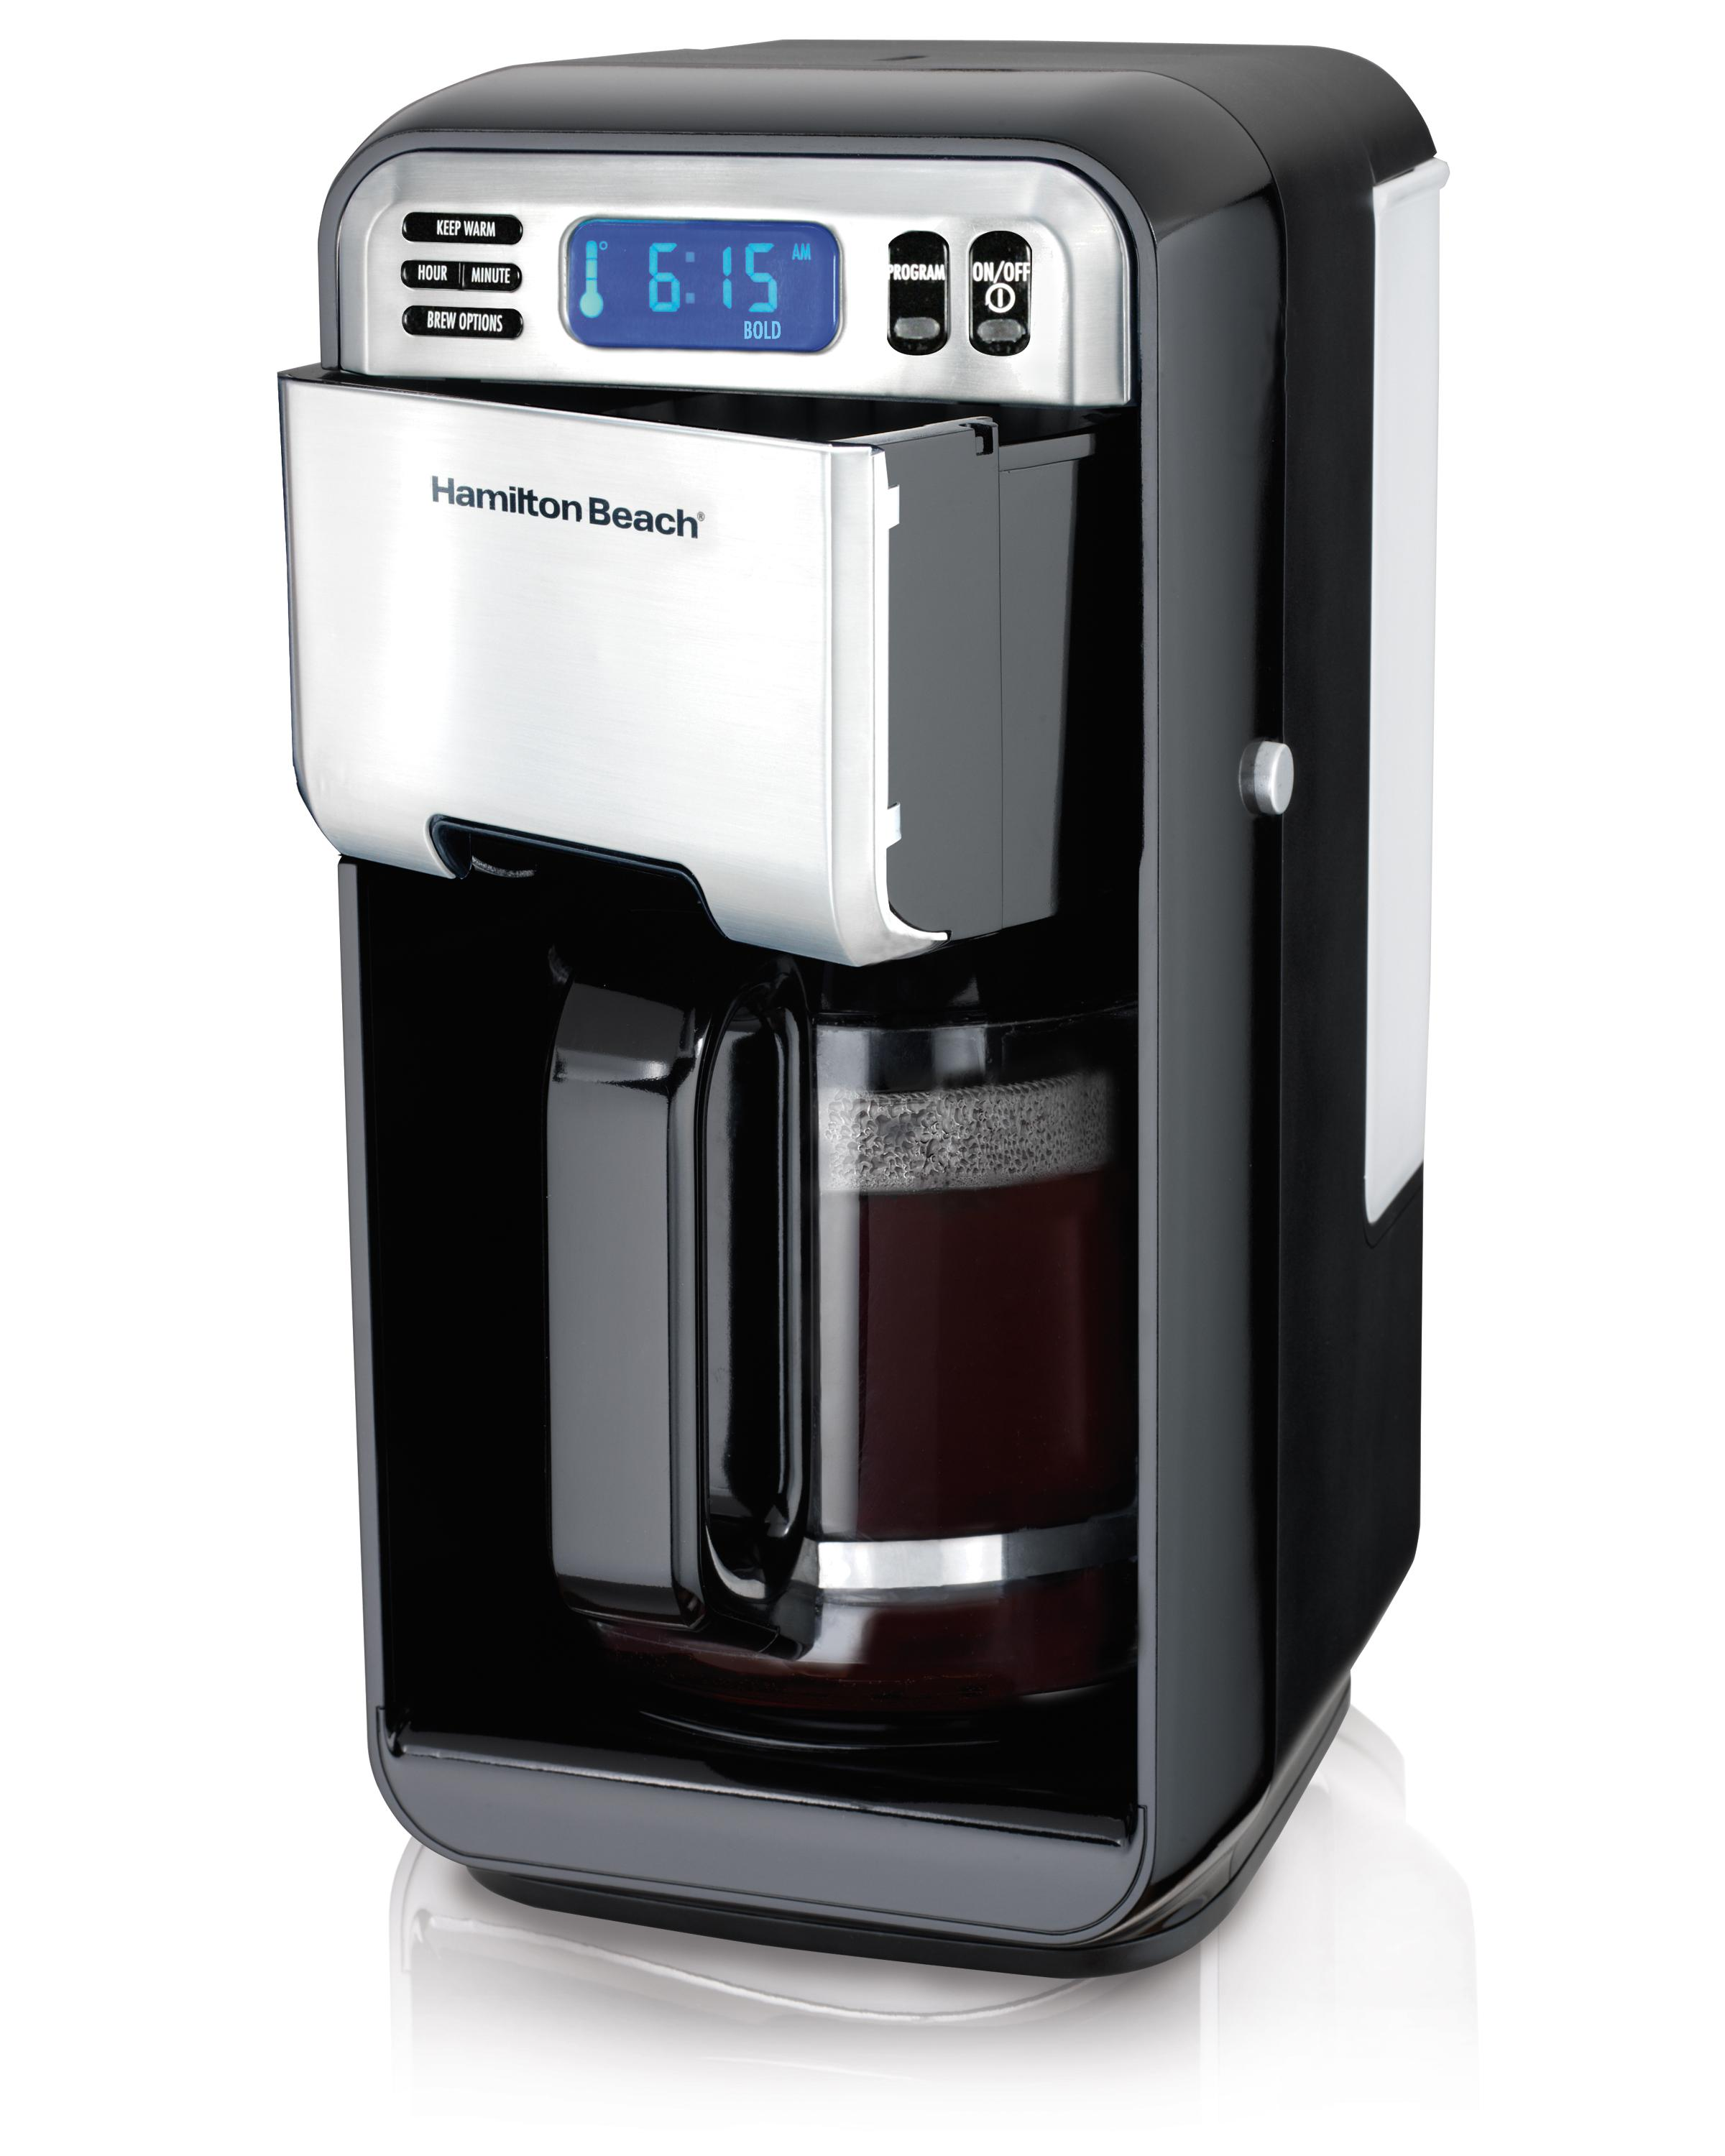 Coffee Maker Coffee Recipe : Hamilton Beach 46201 12 Cup Digital Coffeemaker, Stainless Steel: Amazon.ca: Home & Kitchen